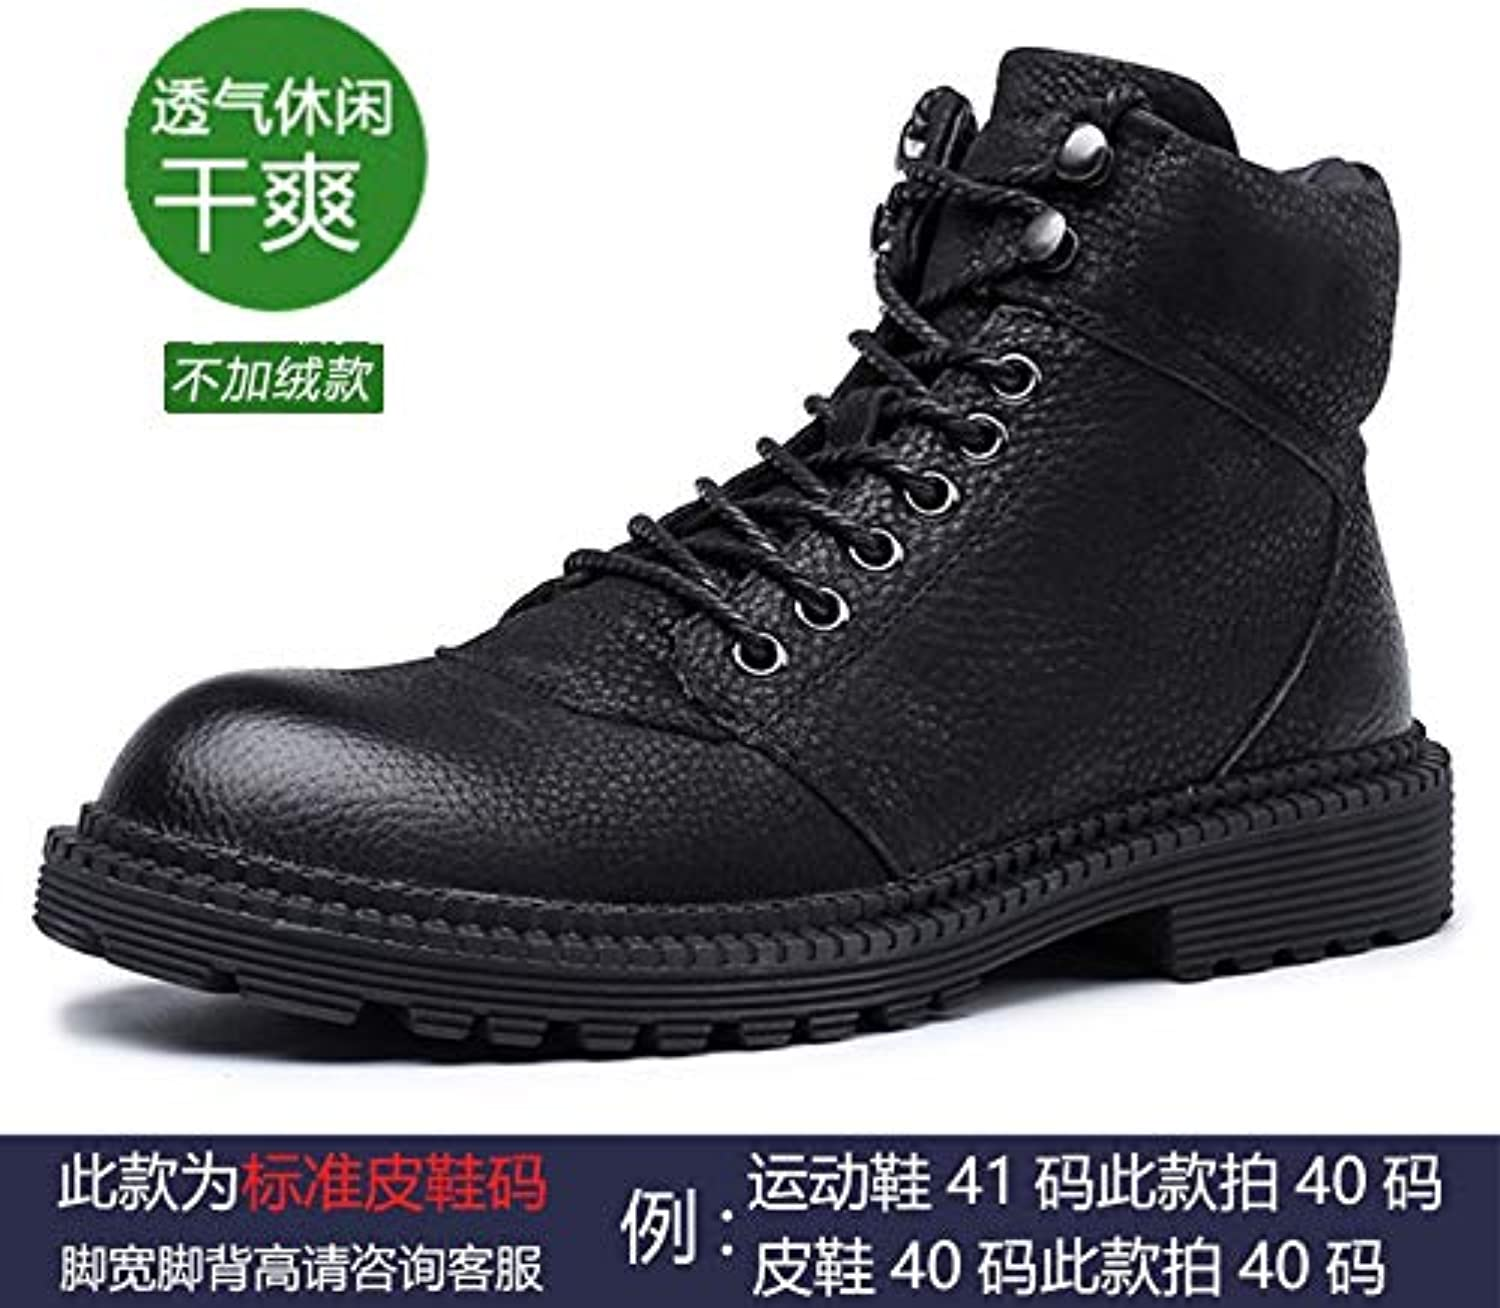 LOVDRAM Boots Men's Chelsea Male Martin Boots Thick Warm Men'S Retro High shoes Leather Winter Cotton shoes Large Size shoes